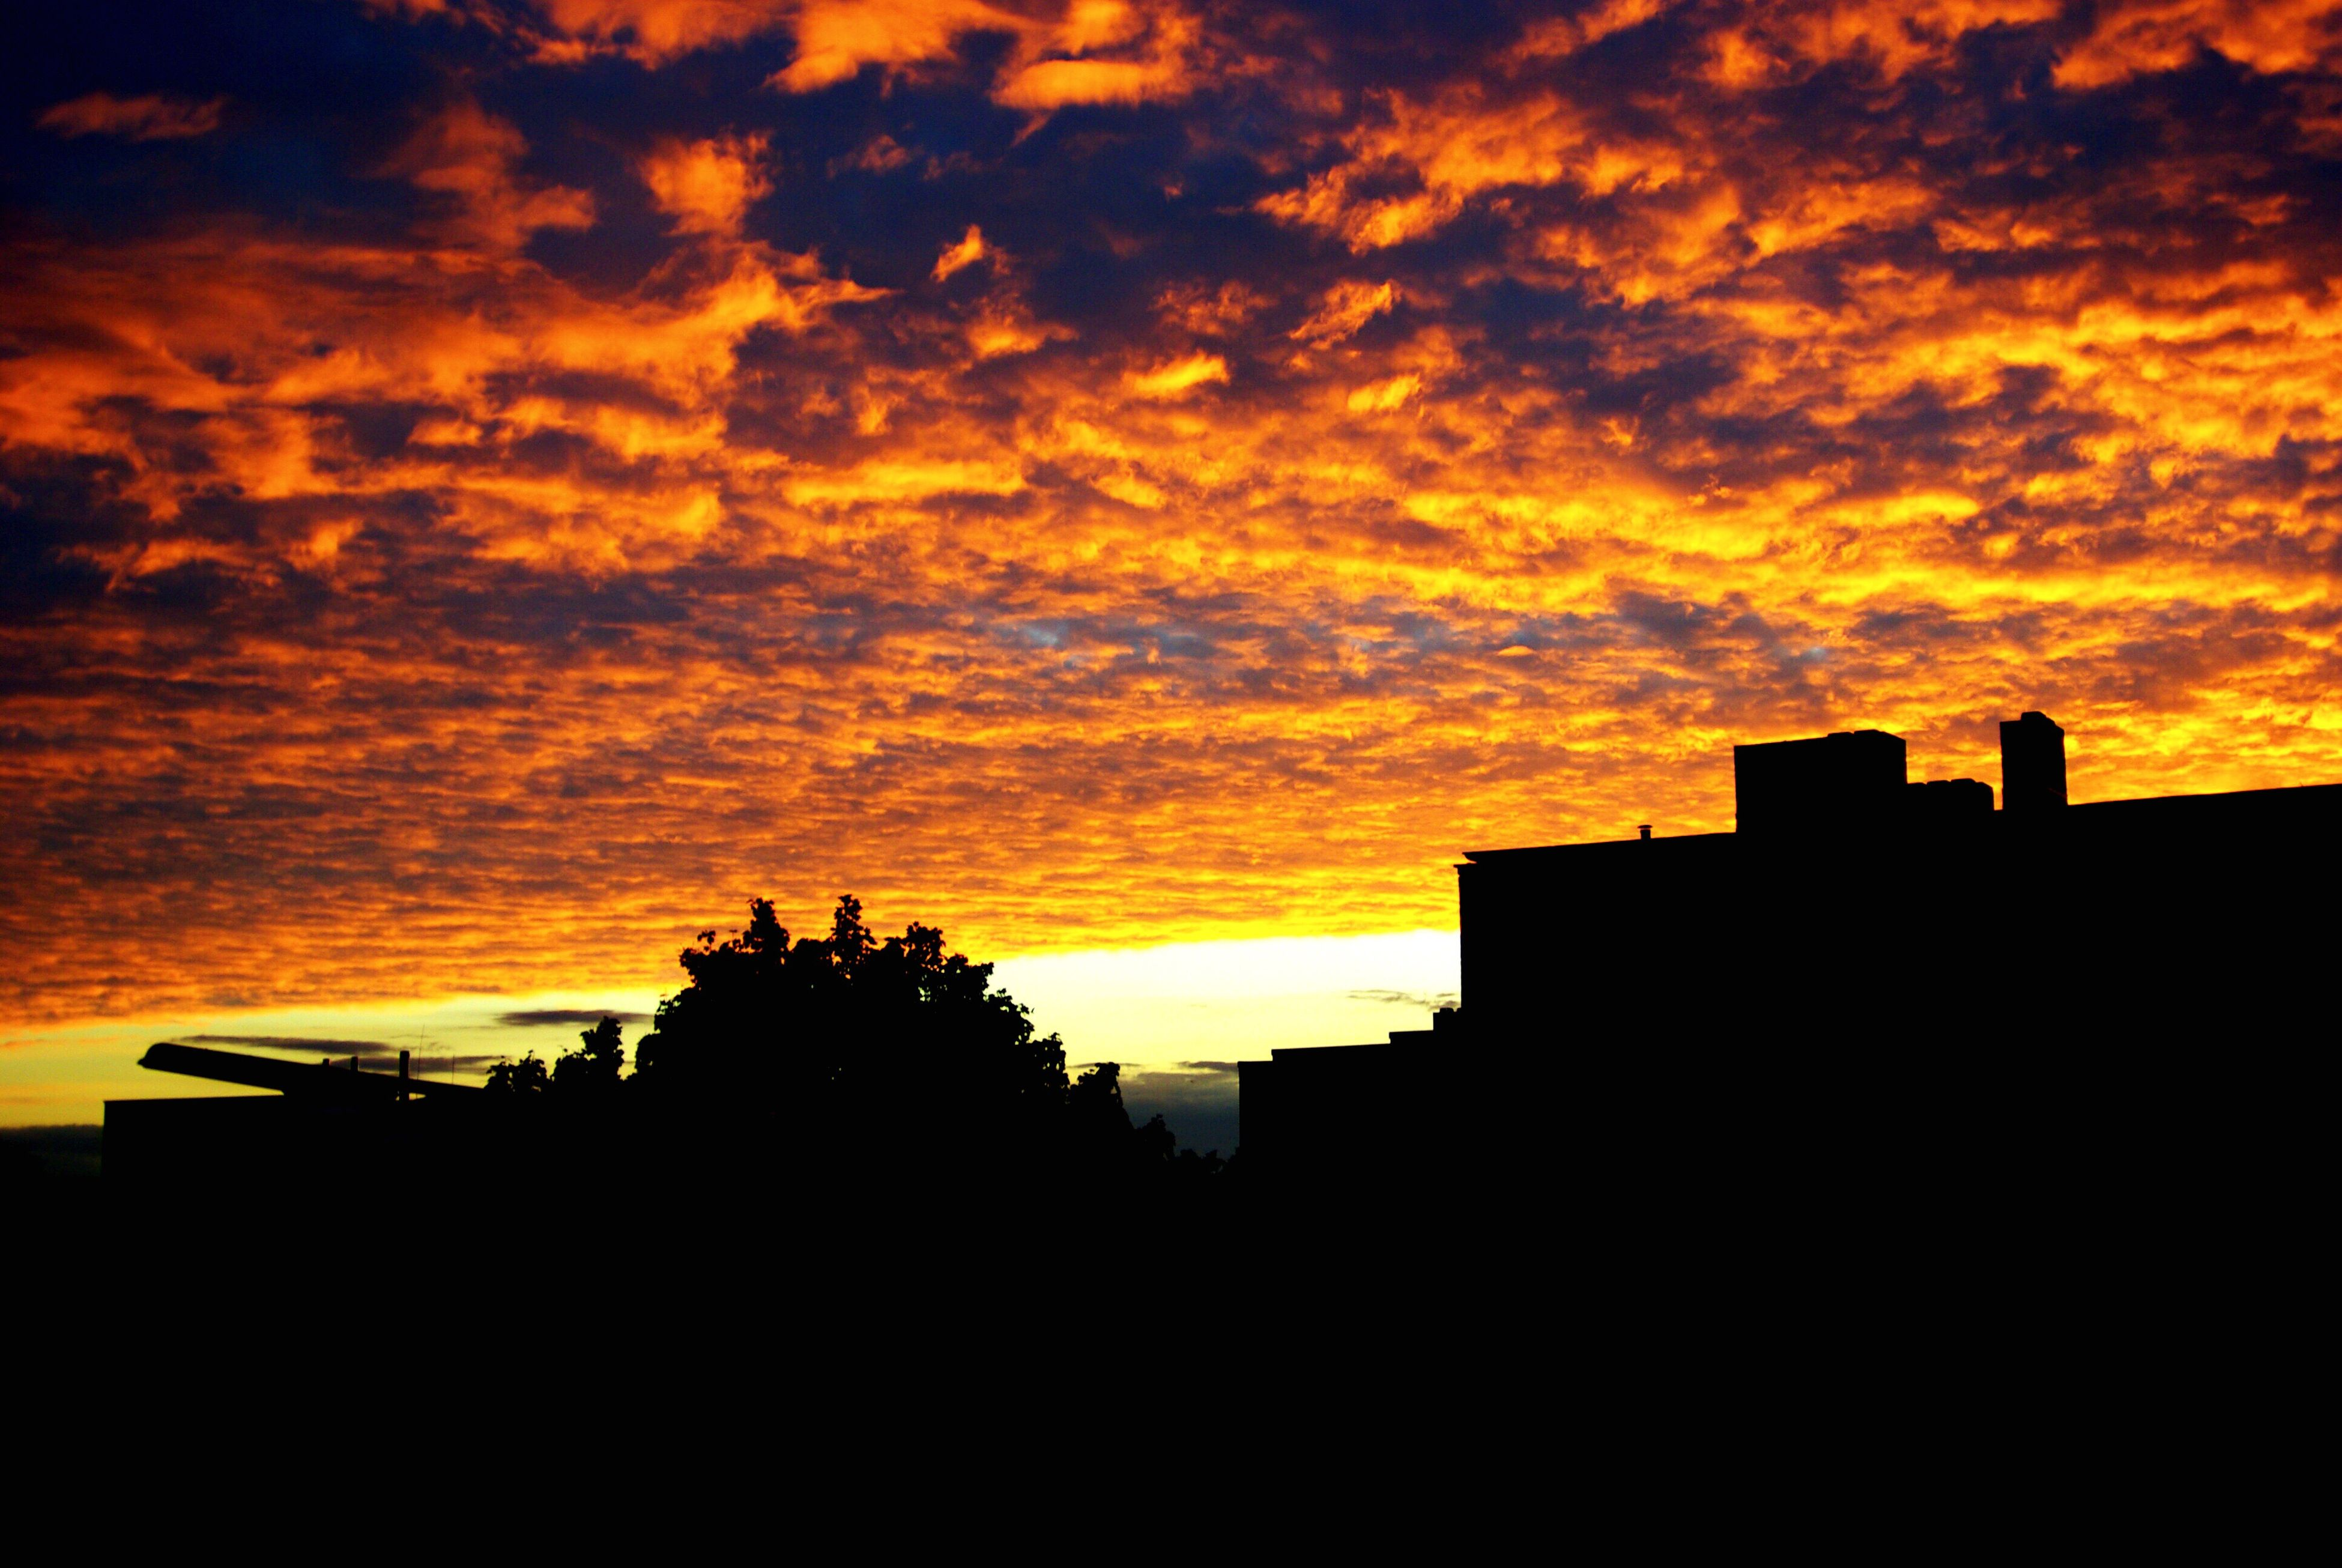 silhouette, sunset, architecture, built structure, building exterior, cloud - sky, orange color, sky, city, cloudy, scenics, outdoors, nature, beauty in nature, outline, no people, majestic, dramatic sky